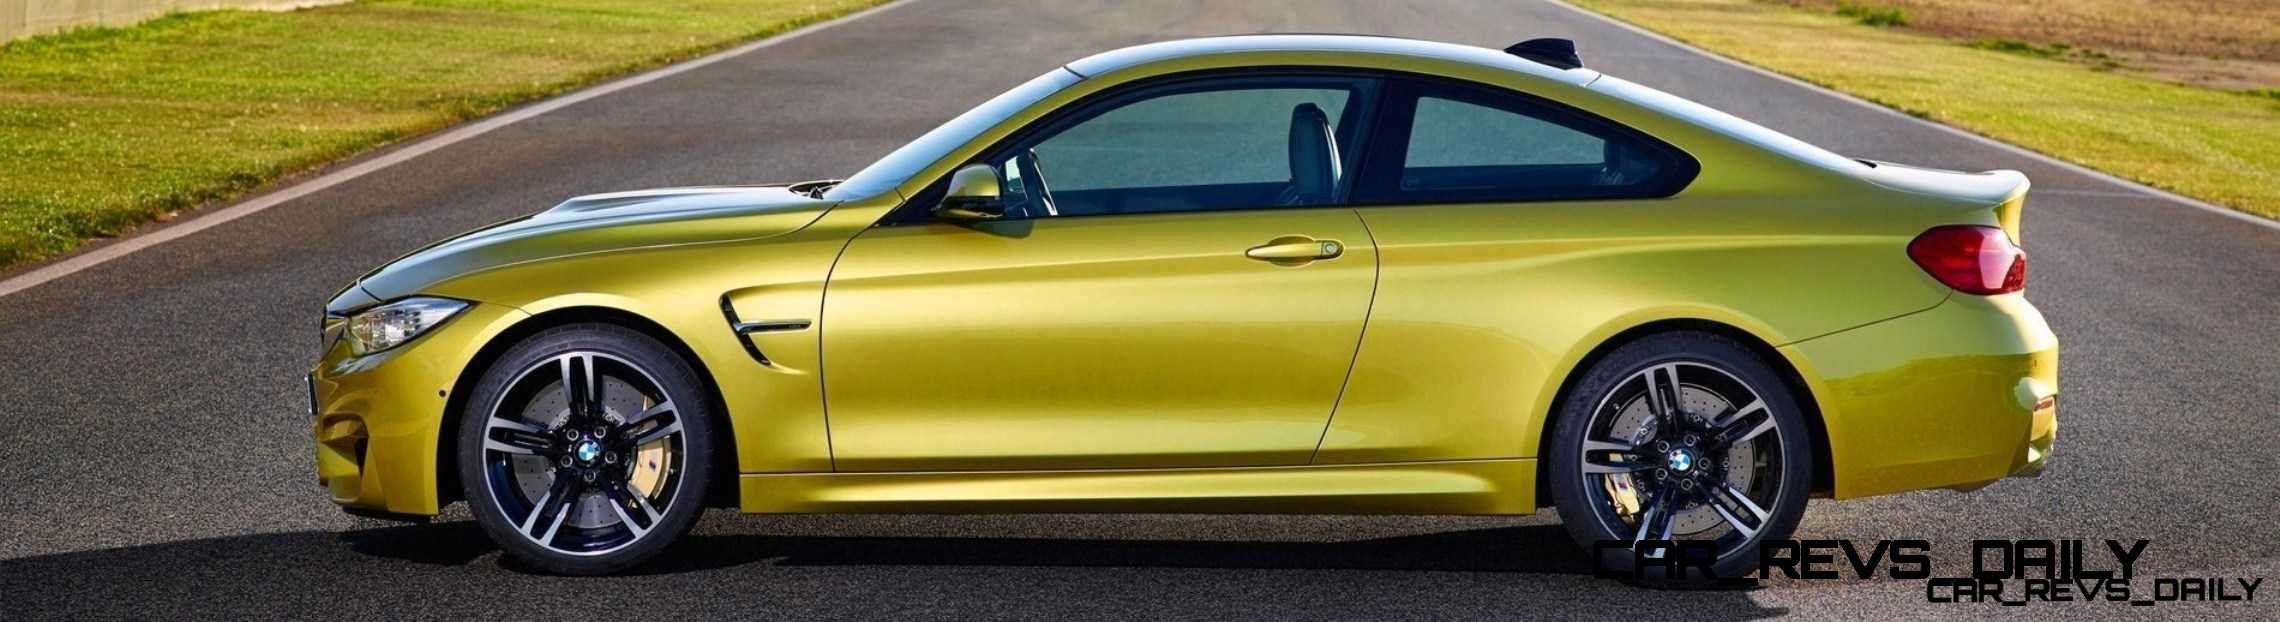 186mph 2014 BMW M4 Screams into Focus 37